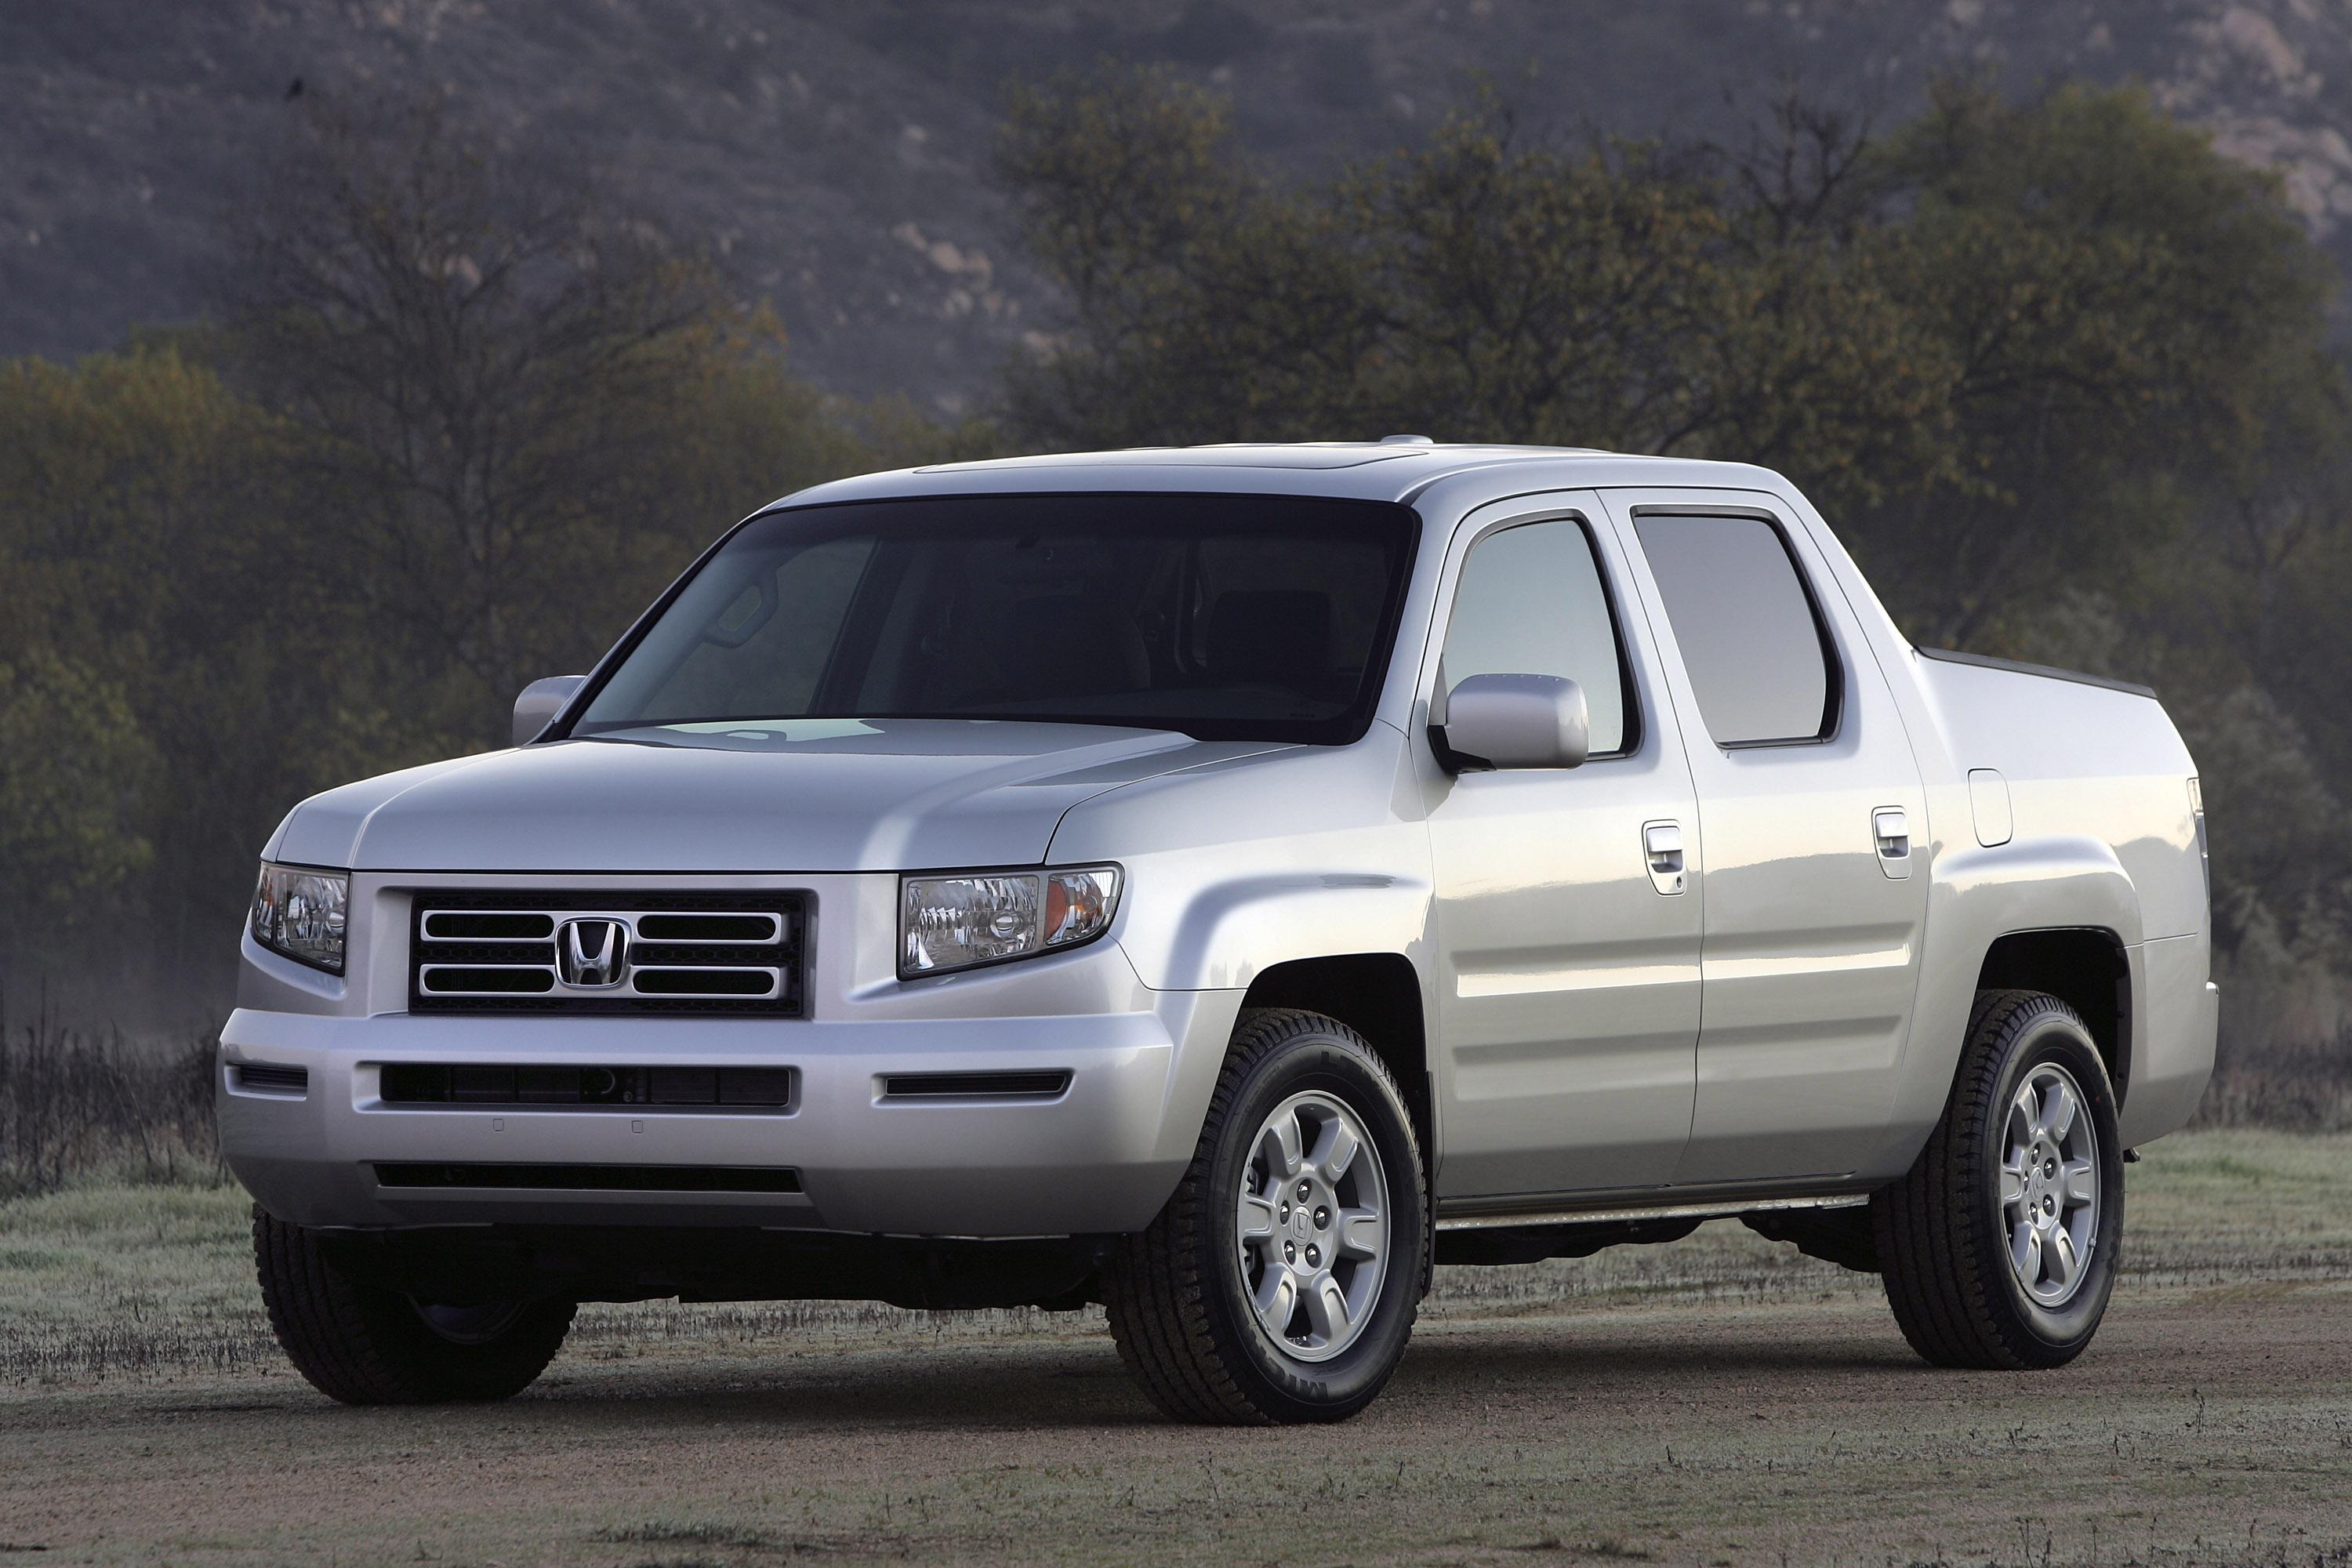 2007 Honda Ridgeline Top Speed